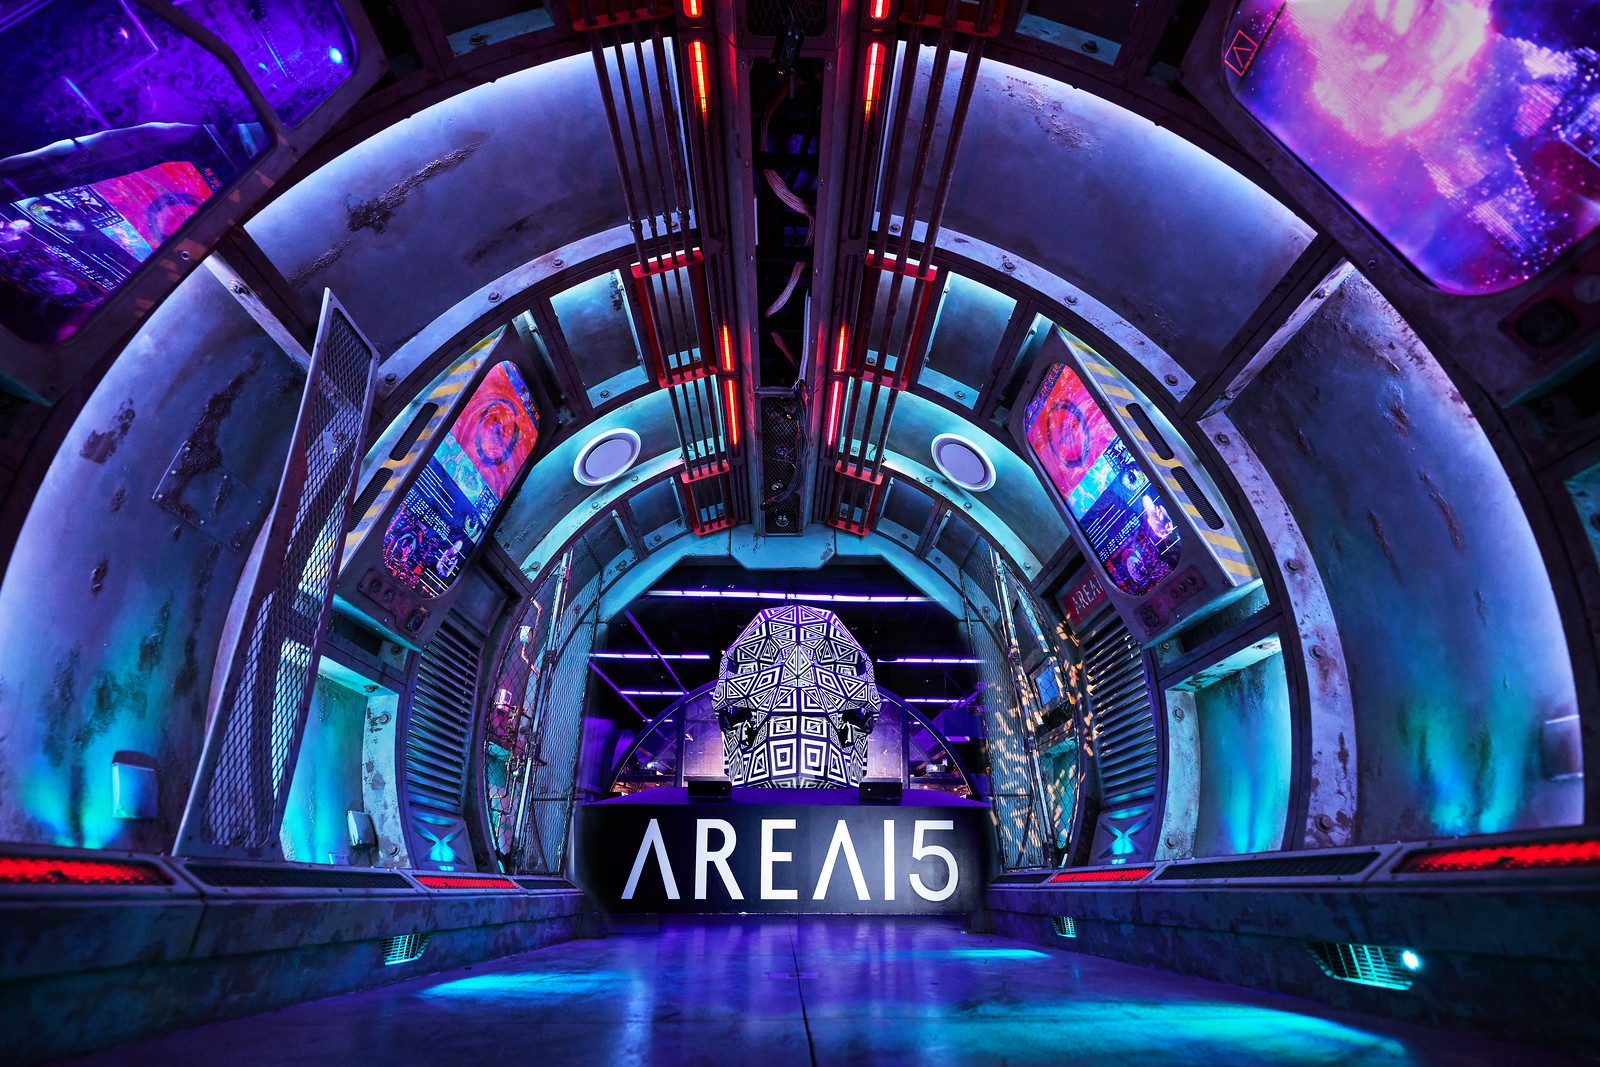 AREA15 portal entrance with AREA15 logo and Skull Art